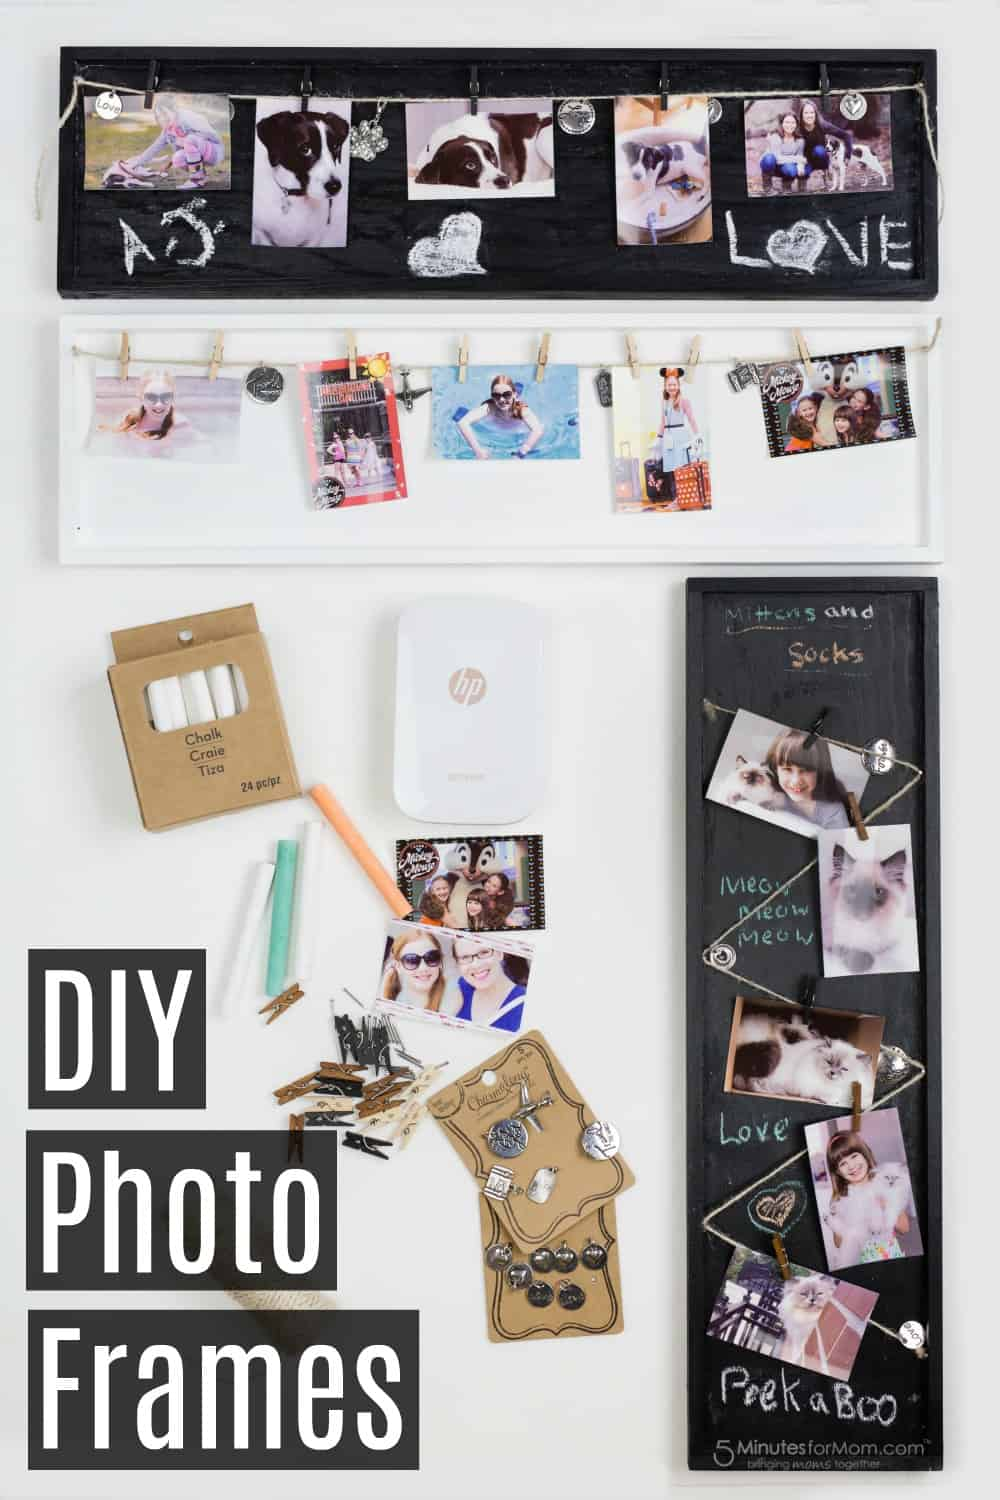 DIY Photo Frames - Photo Craft Idea - Chalkboard Paint Photo Frame